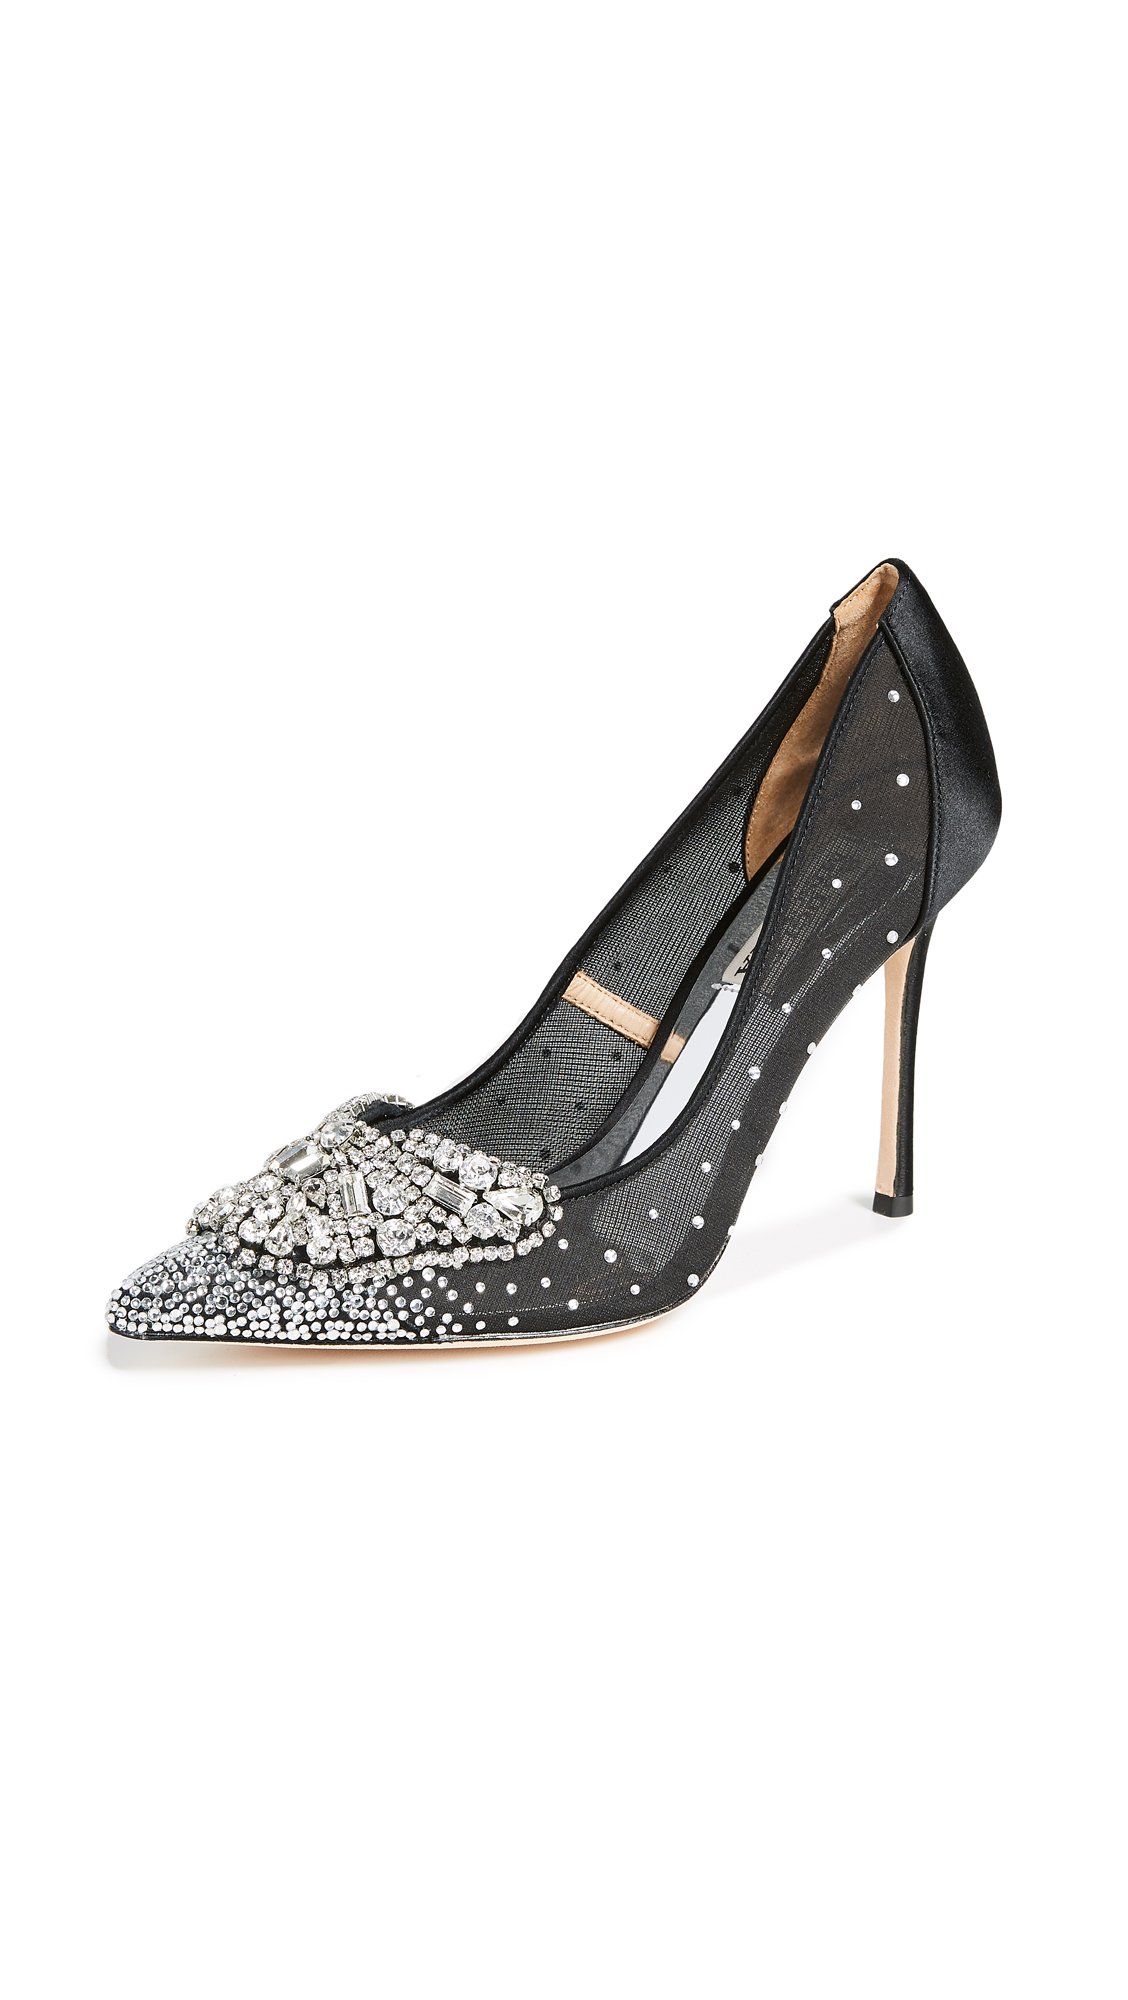 Badgley Mischka Quintana Pointed Toe Pumps